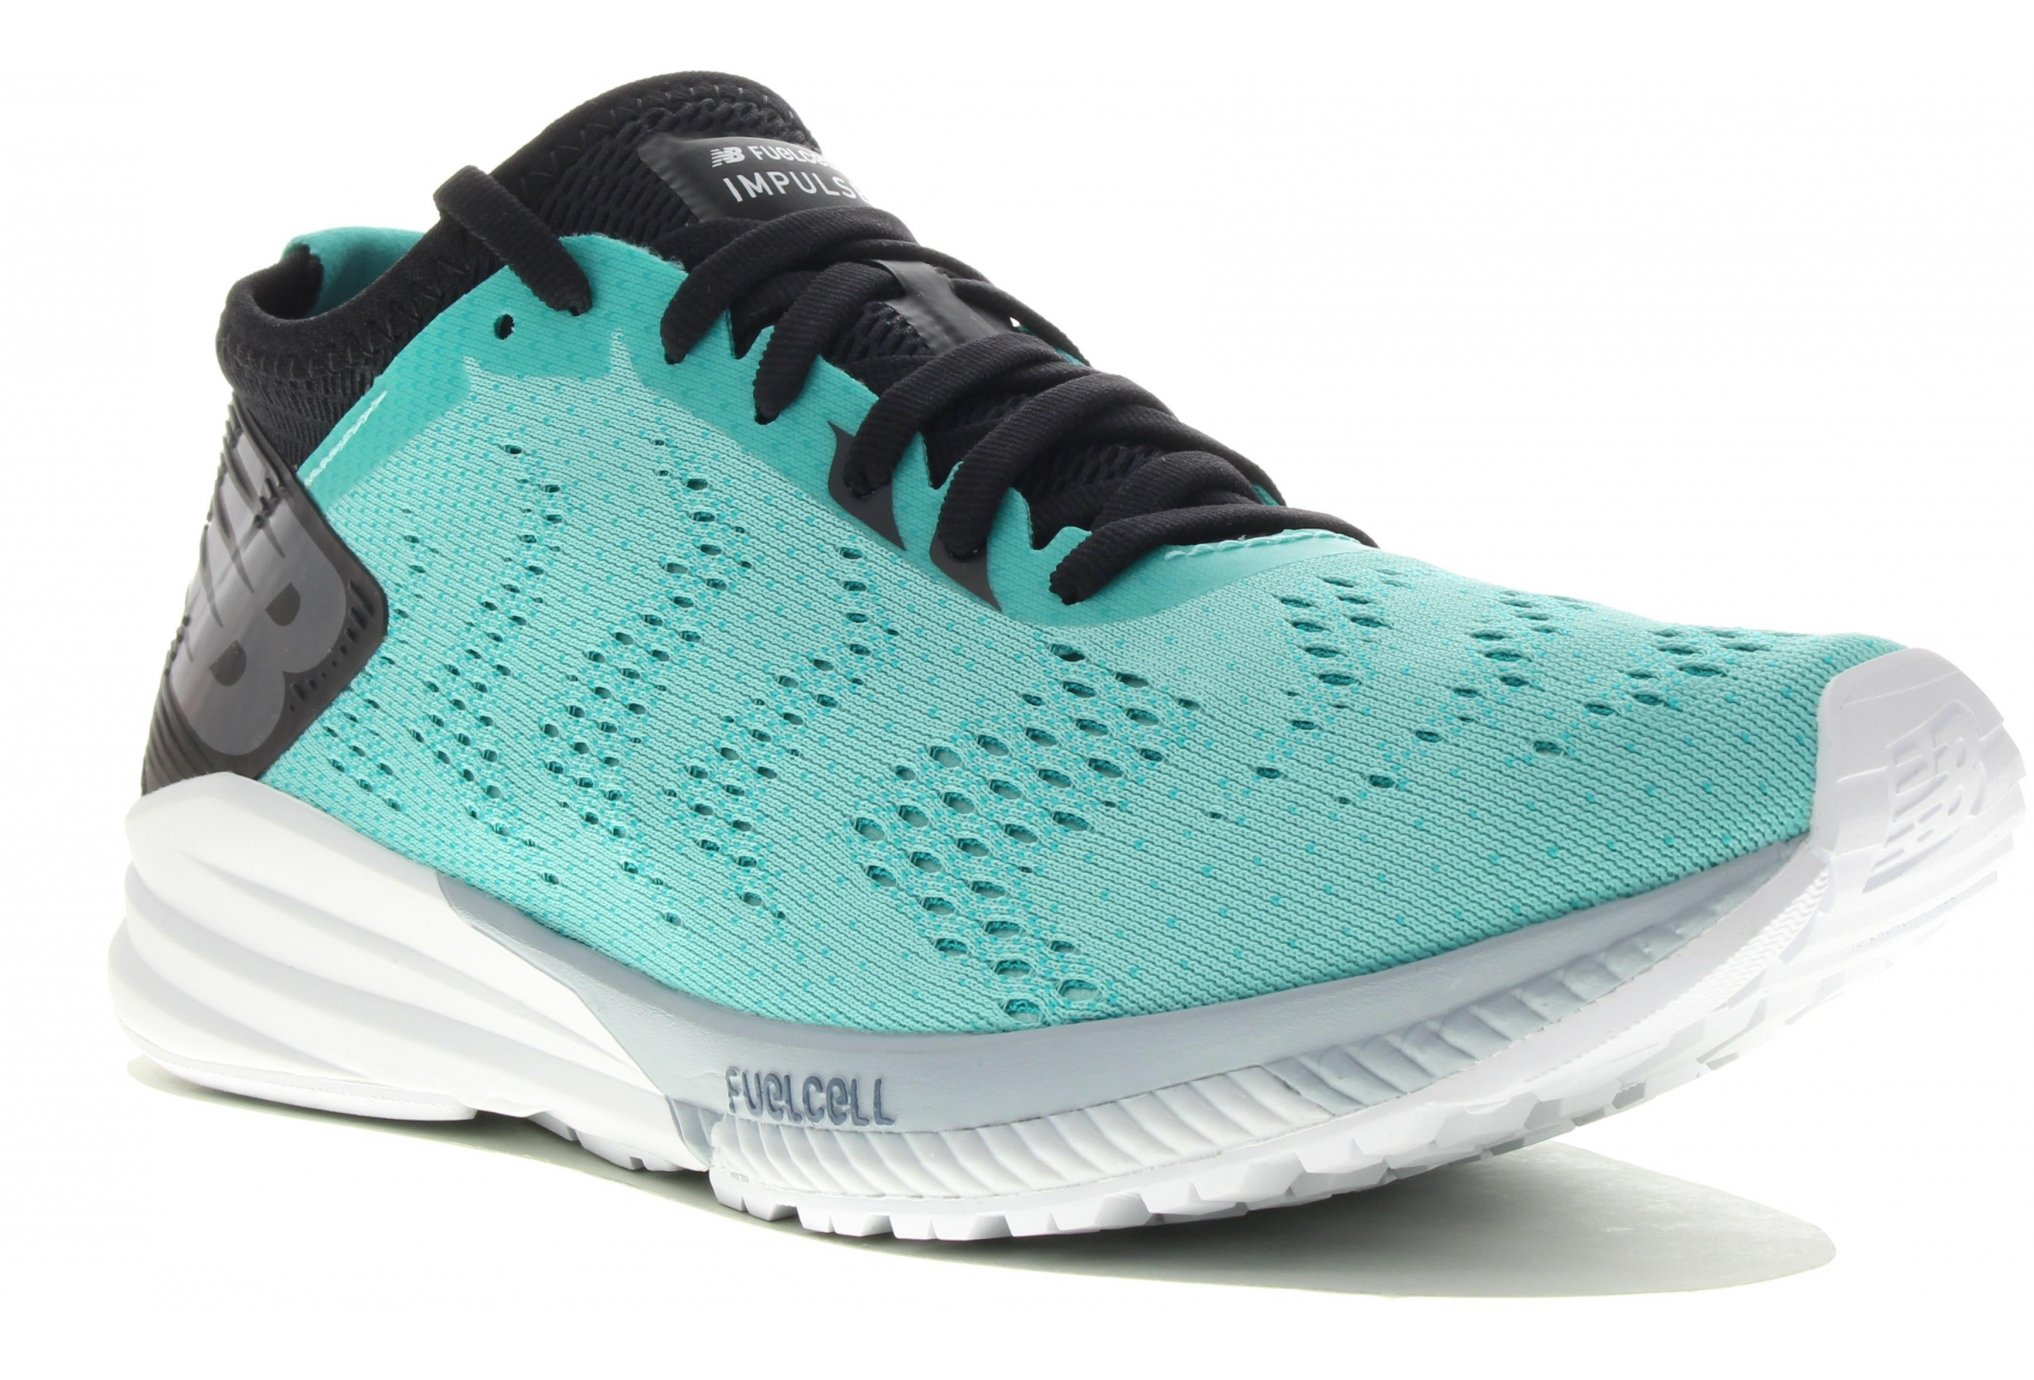 New Balance FuelCell Impulse W Chaussures running femme